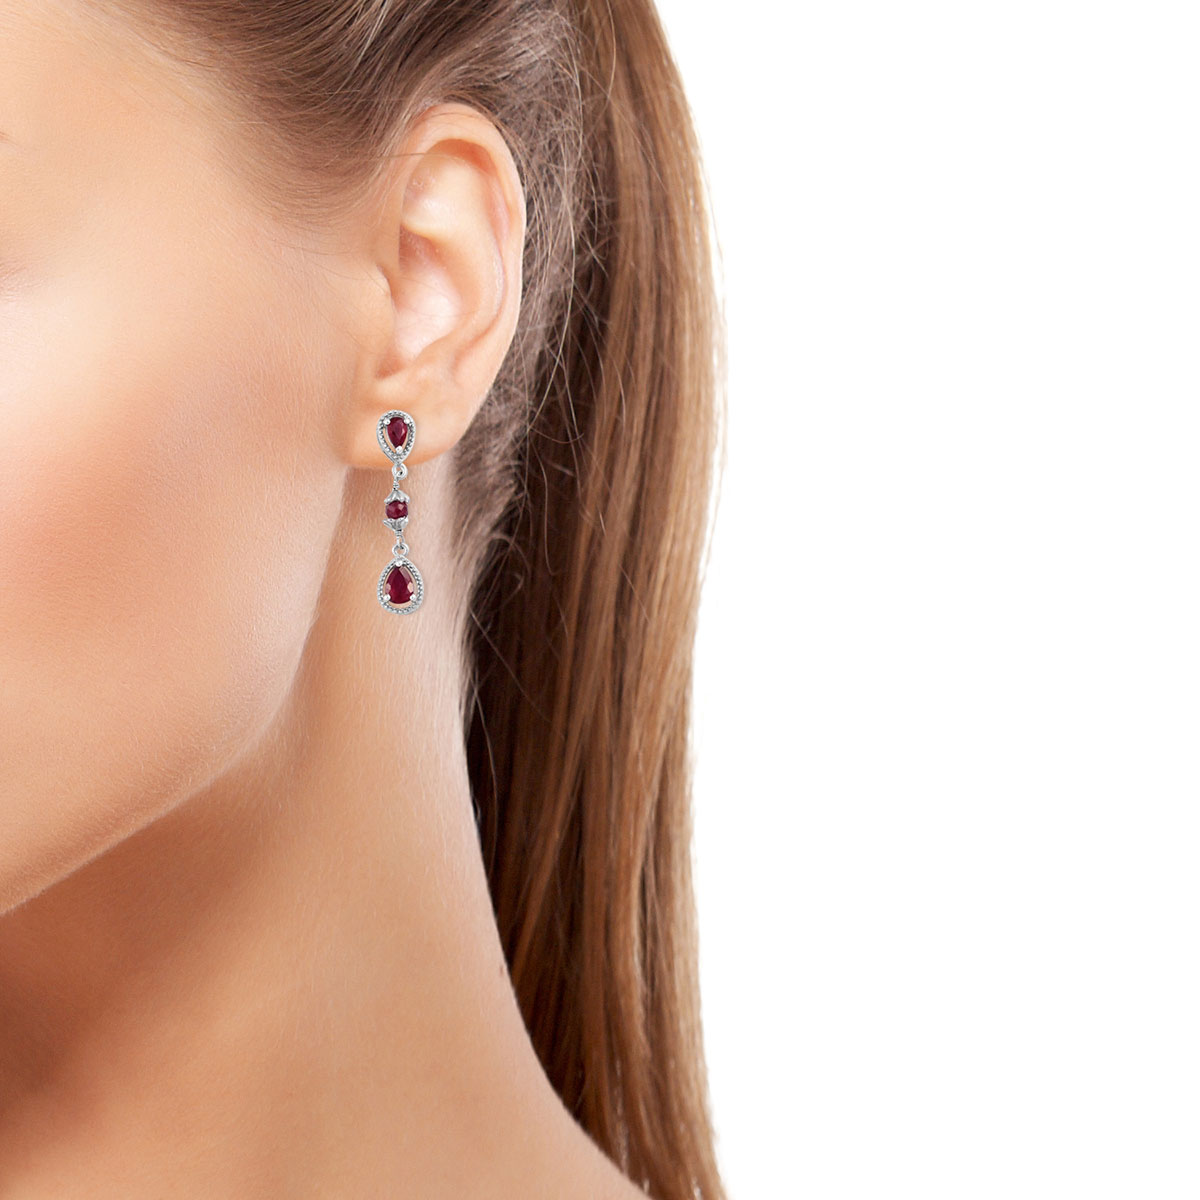 Niassa Ruby Earrings in Platinum Over Sterling Silver 3.32 ctw